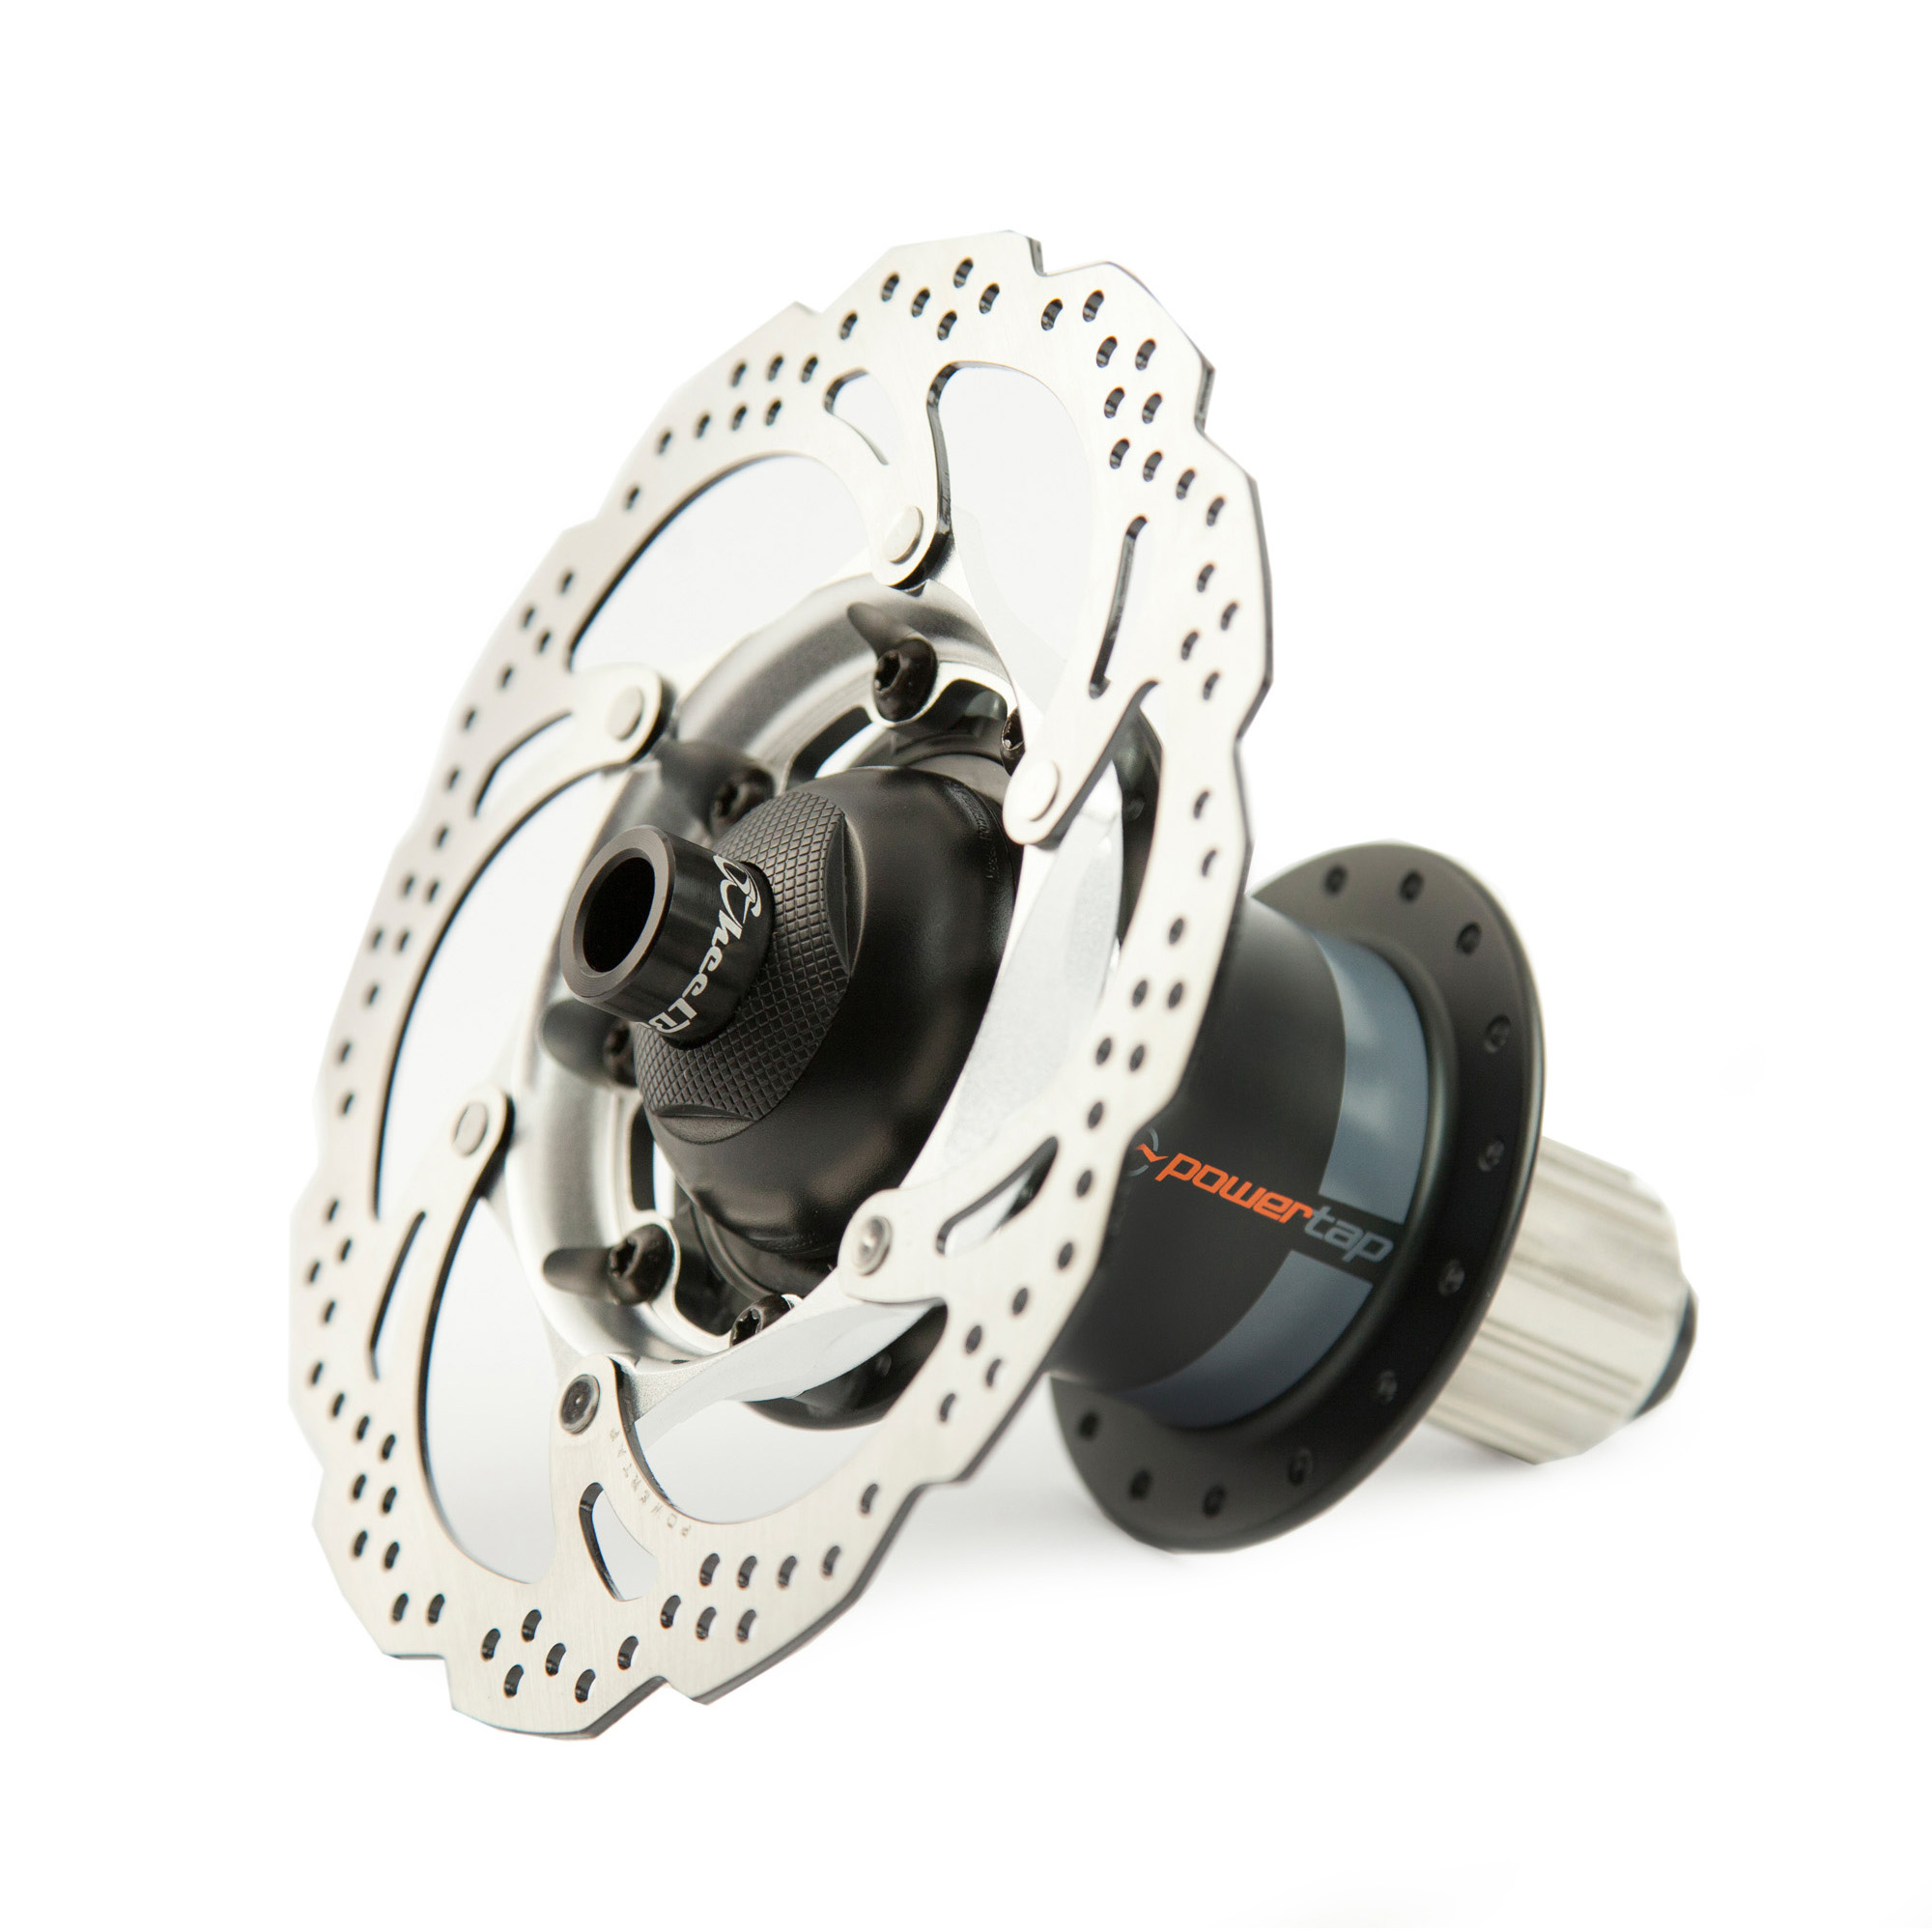 The Powertap disc friendly rear hub with a 160mm rotor included. The above model is a 142 X 12 thru axle.